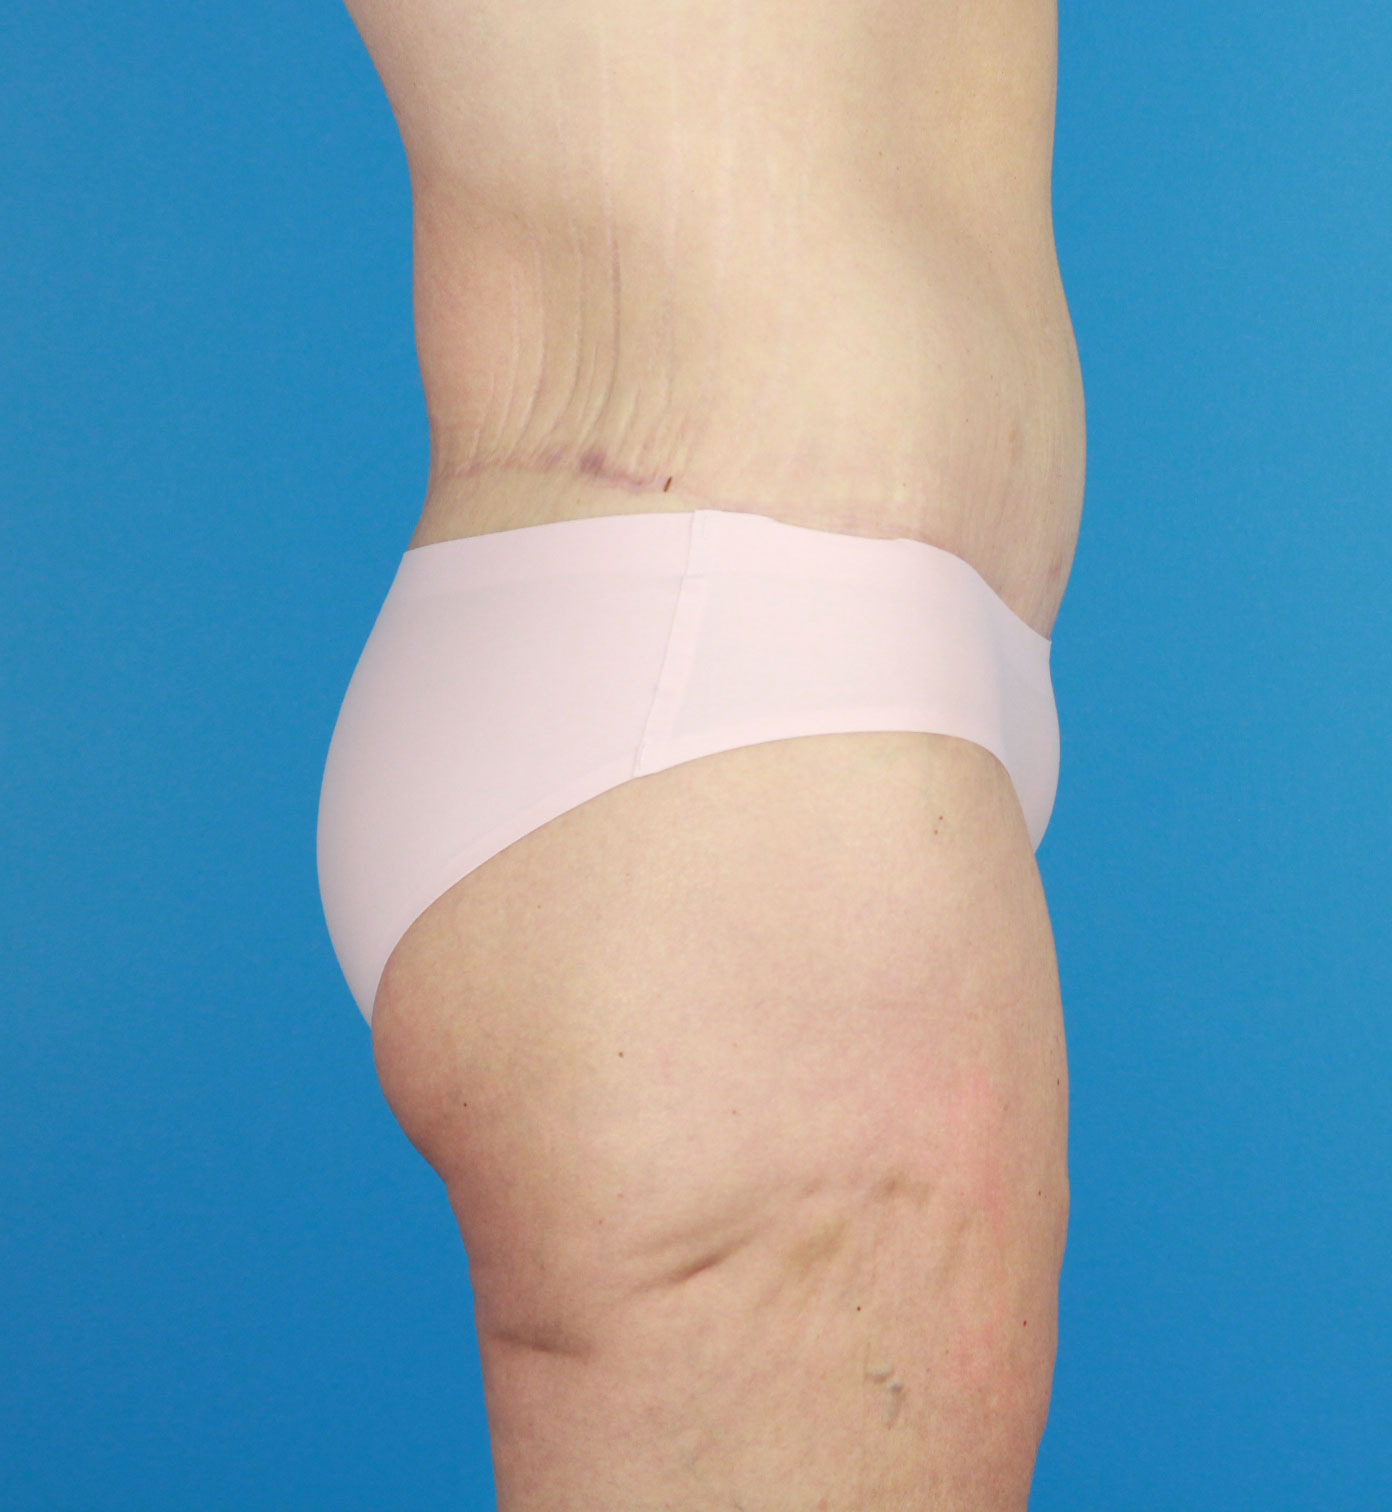 Body Lift Liposuction Before & After Image